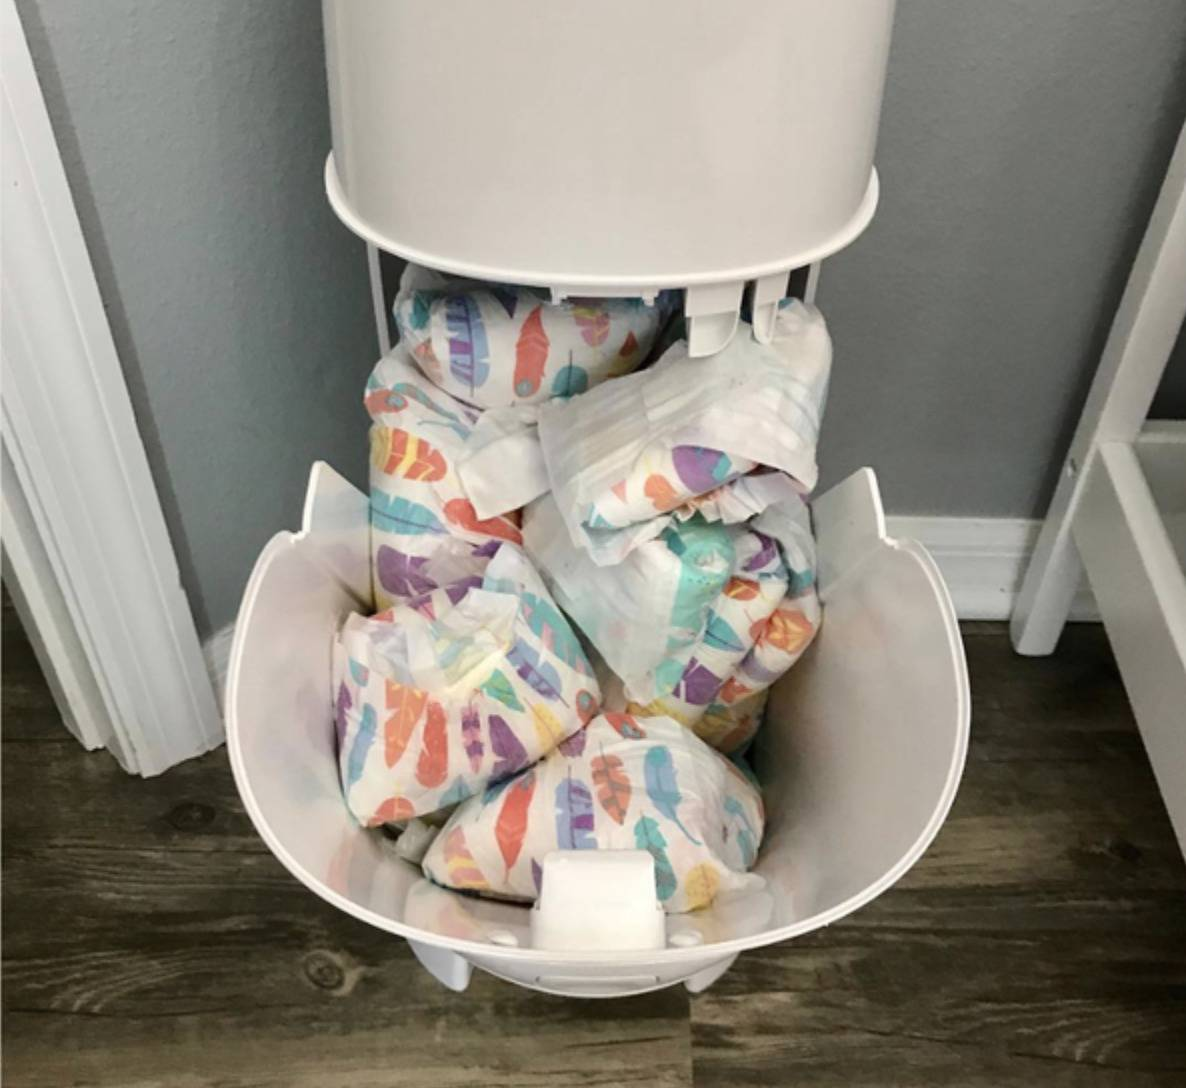 diapers spilling out of bin